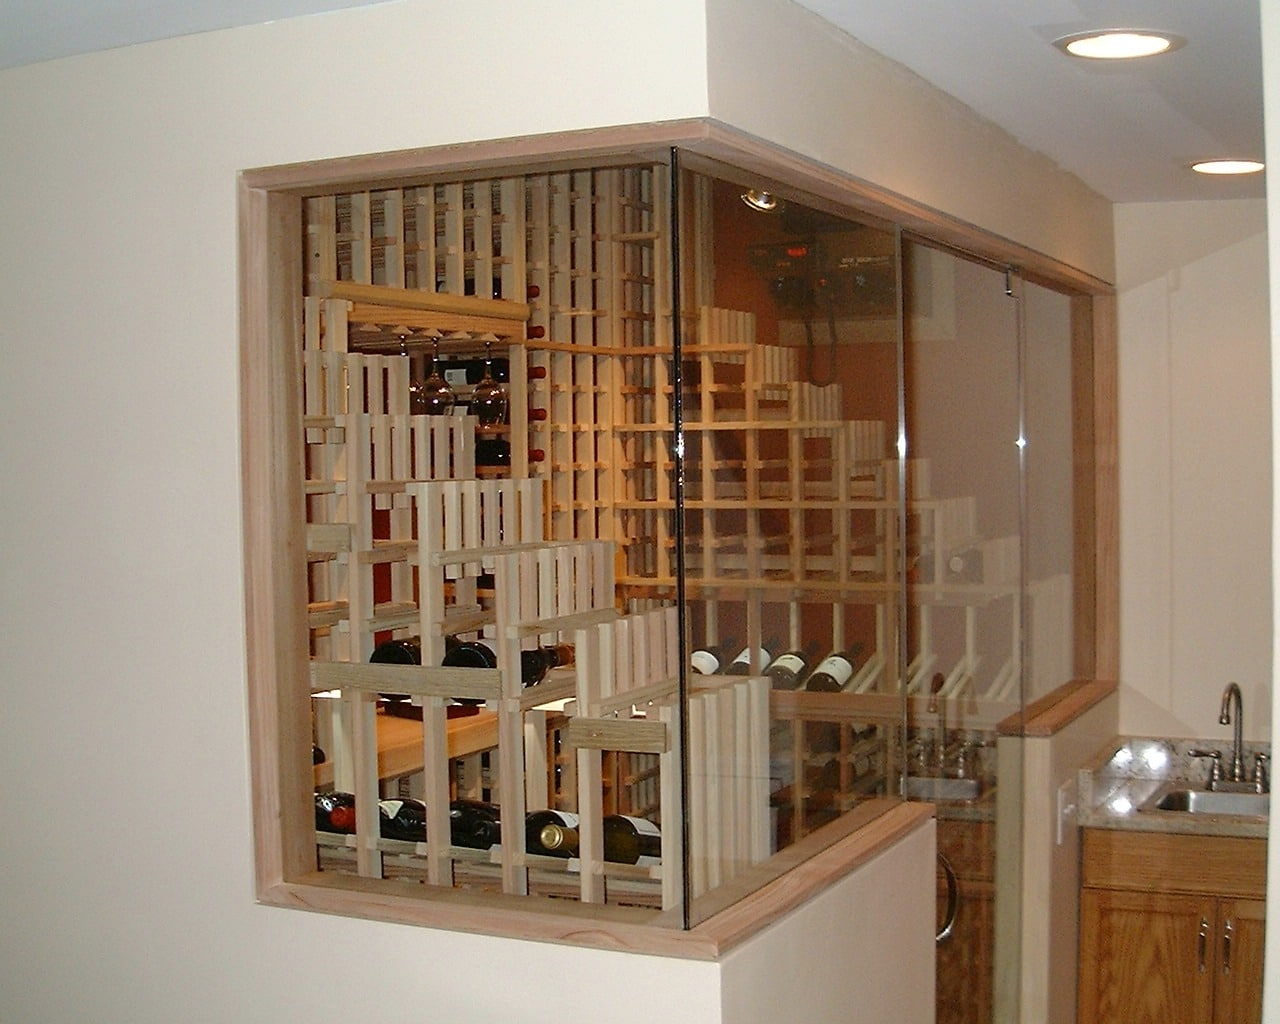 Home Wine Cellar Cooling Project WhisperKOOL Self-Contained System